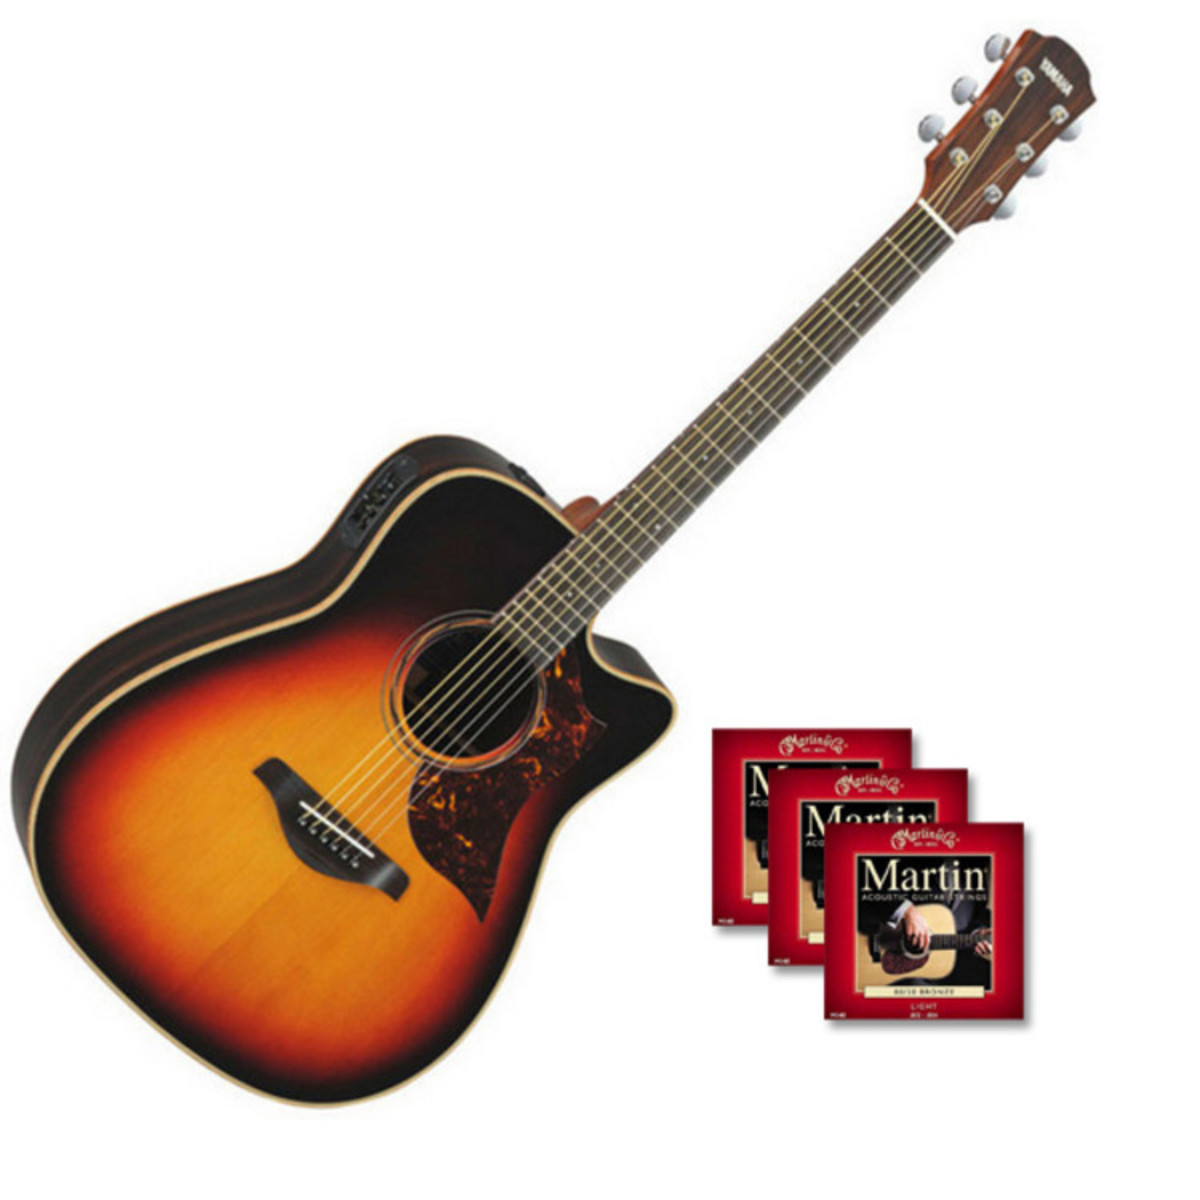 yamaha a3r guitare lectro acoustique sunburst vintage. Black Bedroom Furniture Sets. Home Design Ideas